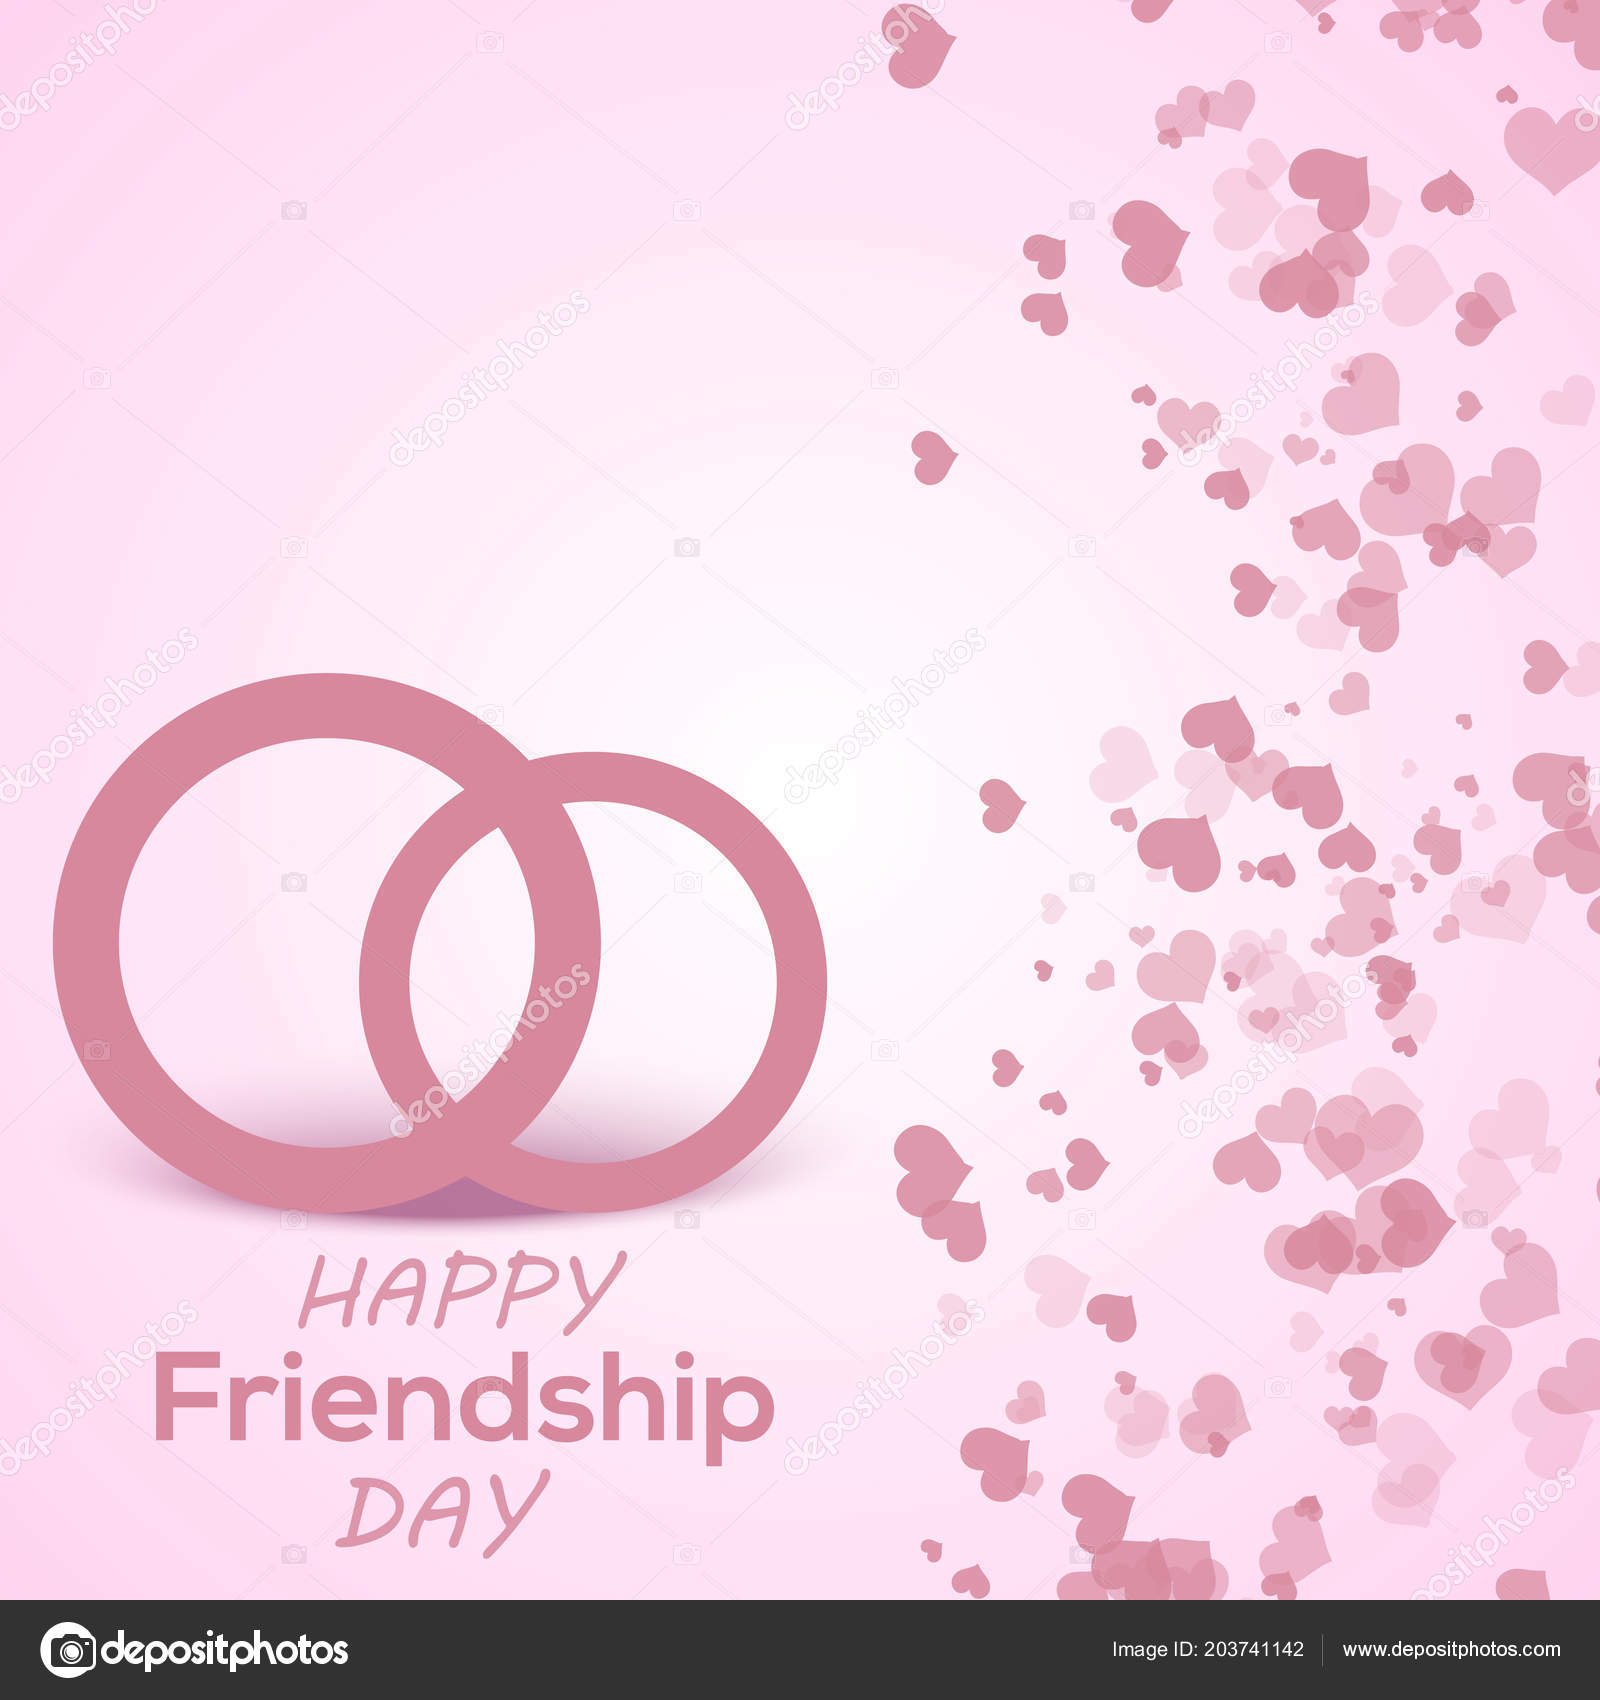 Happy Friendship Day Greeting Card With Hand Written Text And Heart